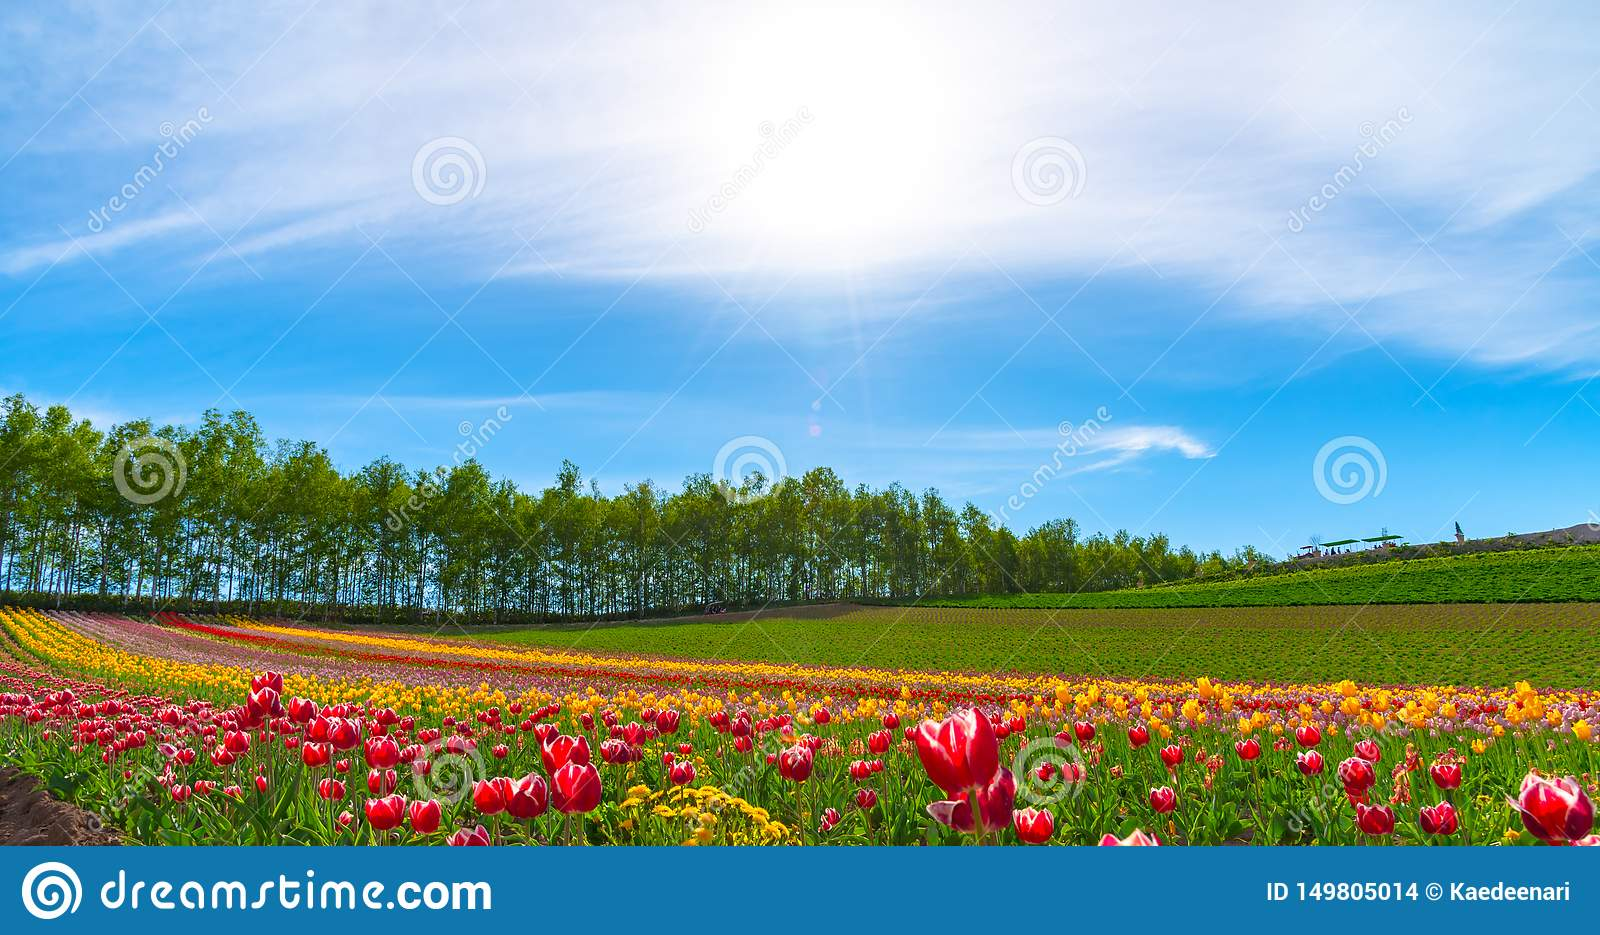 Mountain, Trees and Tulip flowers field with clear blue sky backgound in sunny day